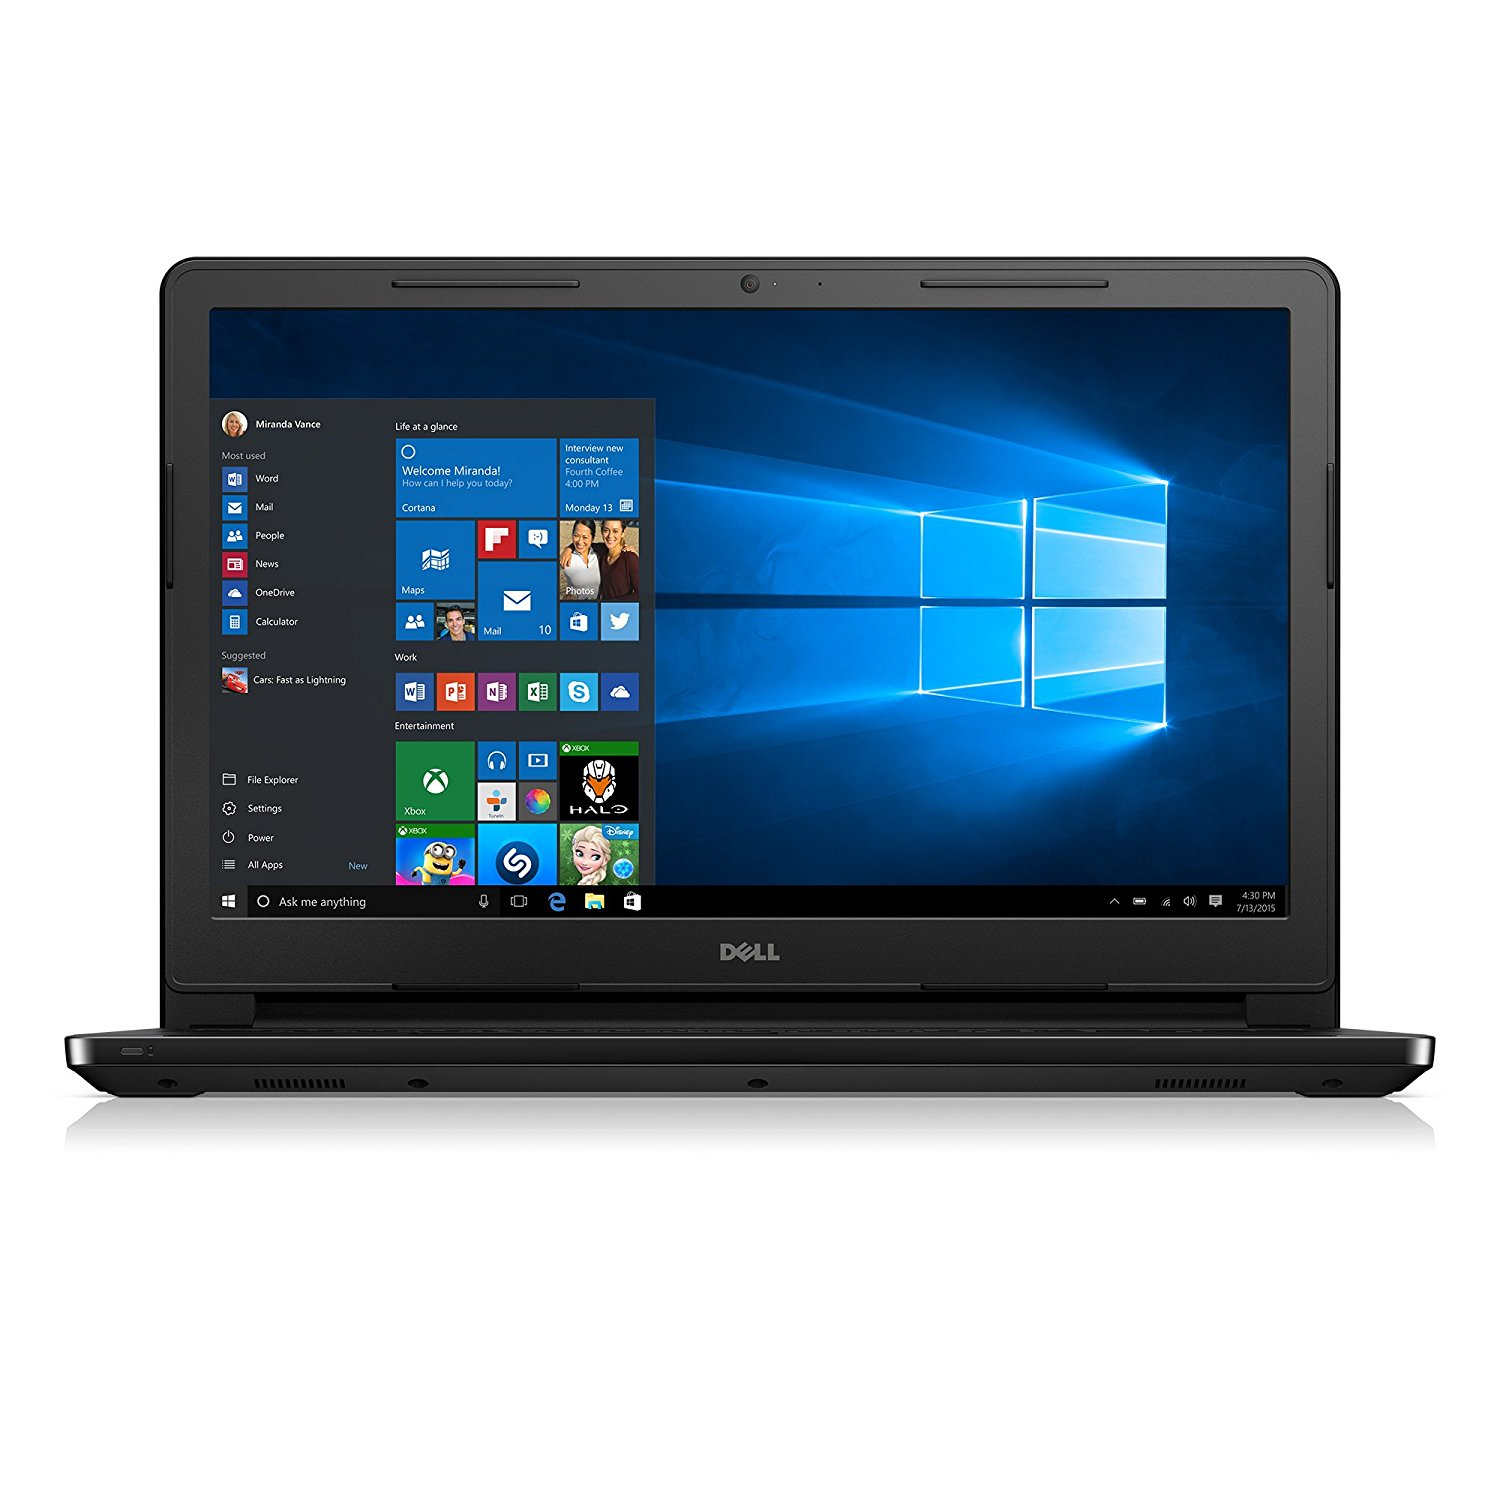 "2018 Flagship Dell Inspiron 15.6"" HD Premium Touchscreen Laptop - Intel Dual-Core i5-7200U 2.5GHz, 8GB DDR4, 1TB HDD, MaxxAudio, DVDRW, Bluetooth, WLAN, HDMI, Webcam, 3-in-1 Card Reader, Windows 10"